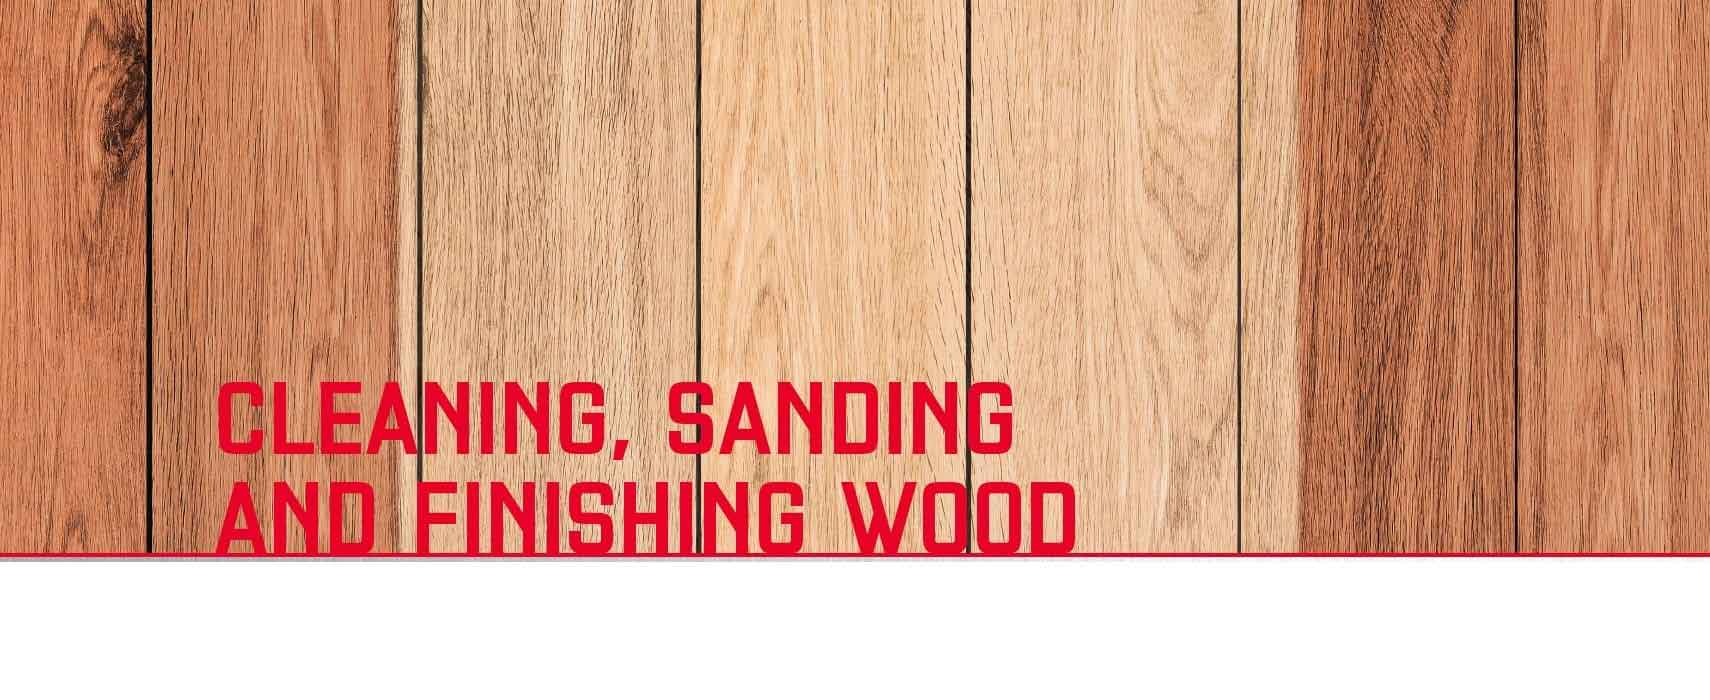 Sanding & Finishing